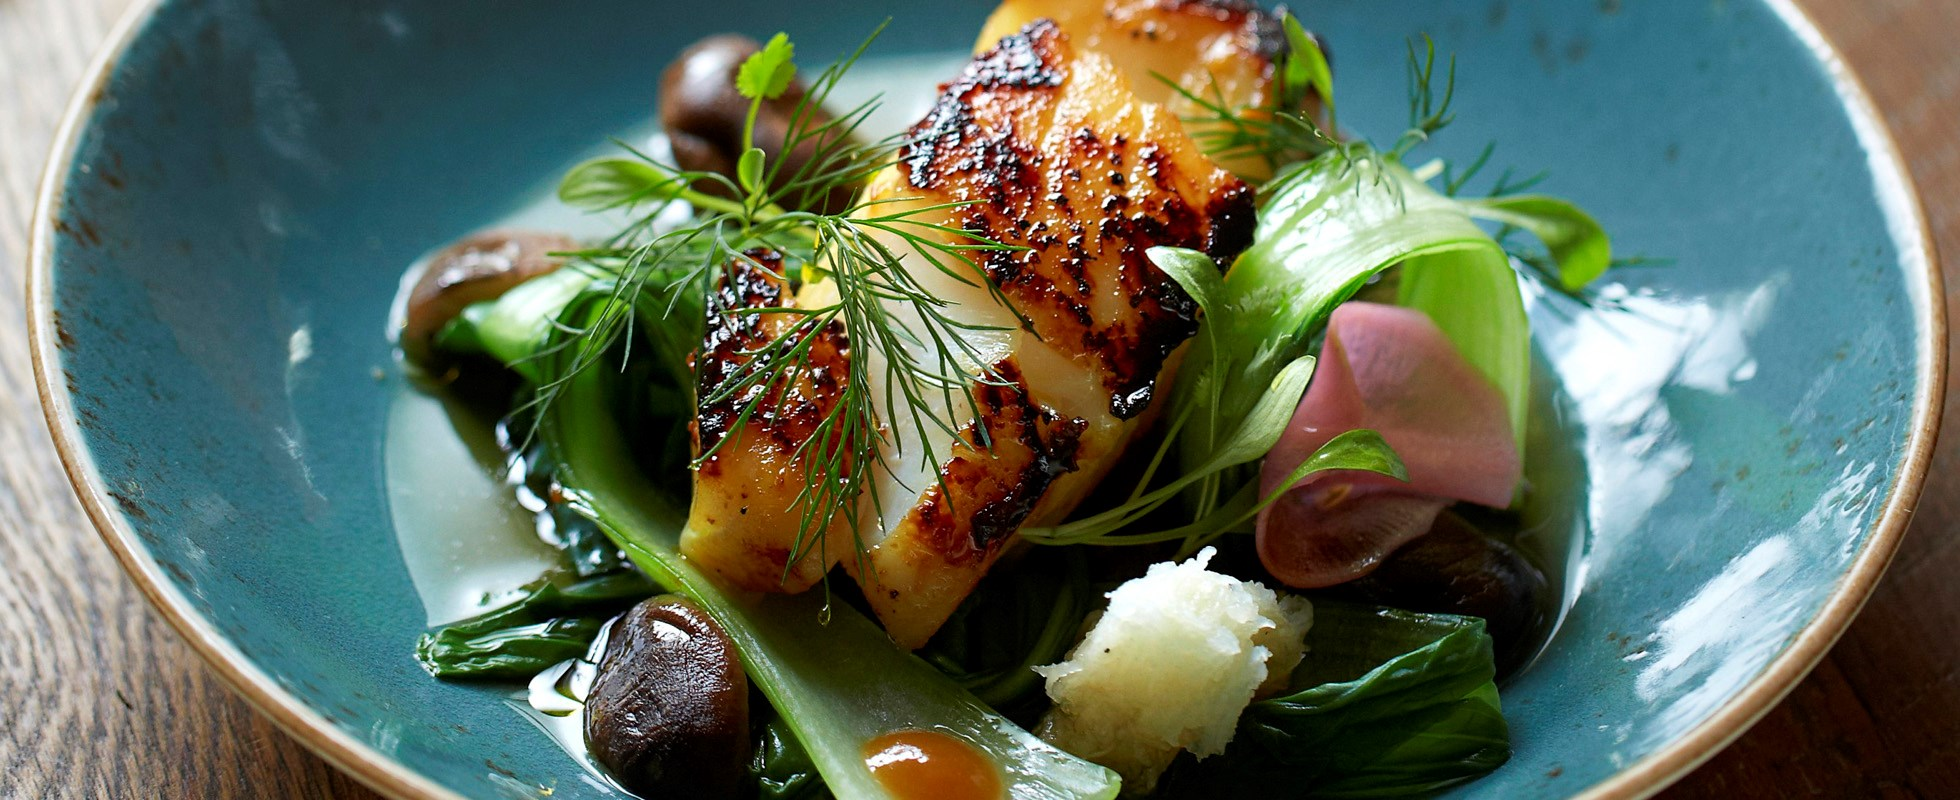 16 best ever japanese recipes olive magazine olive magazine the best blackened cod recipe marinated in miso with pak choi and shiitake mushrooms this dish from londons the city barge pub will impress your friends forumfinder Choice Image